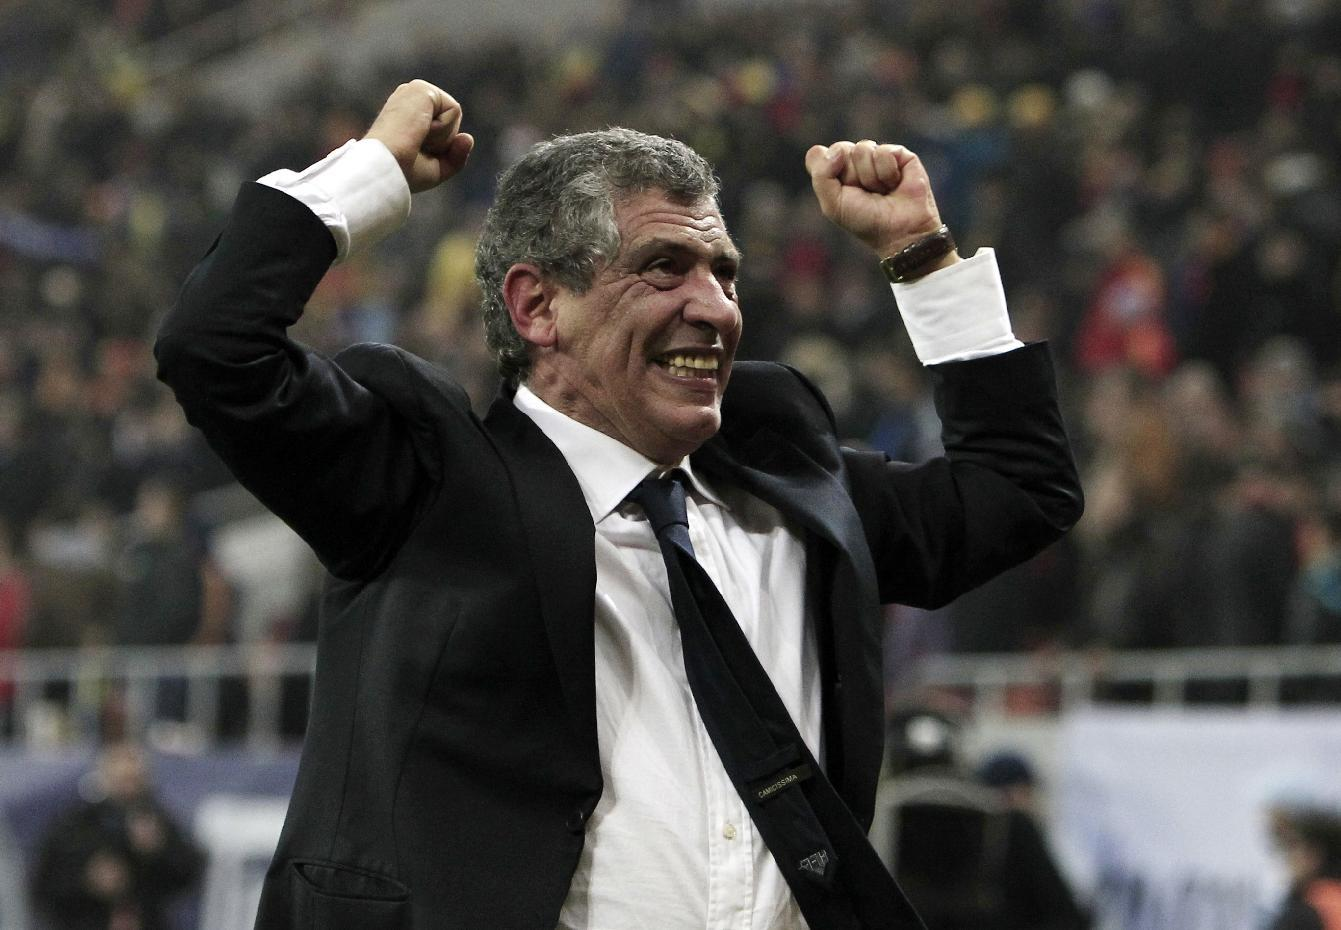 FILE - In this Tuesday, Nov. 19, 2013 file photo, Fernando Santos, the coach of Greece, celebrates after defeating Romania in their World Cup qualifying playoff second leg match at the National Arena in Bucharest. Greece's Football Association said Thursday Feb. 27, 2014, that national coach Fernando Santos will step down following the World Cup in Brazil, after a successful four-year term on the job that saw the country rise to 12th place in the the FIFA world rankings. (AP Photo/Thanassis Stavrakis, File)